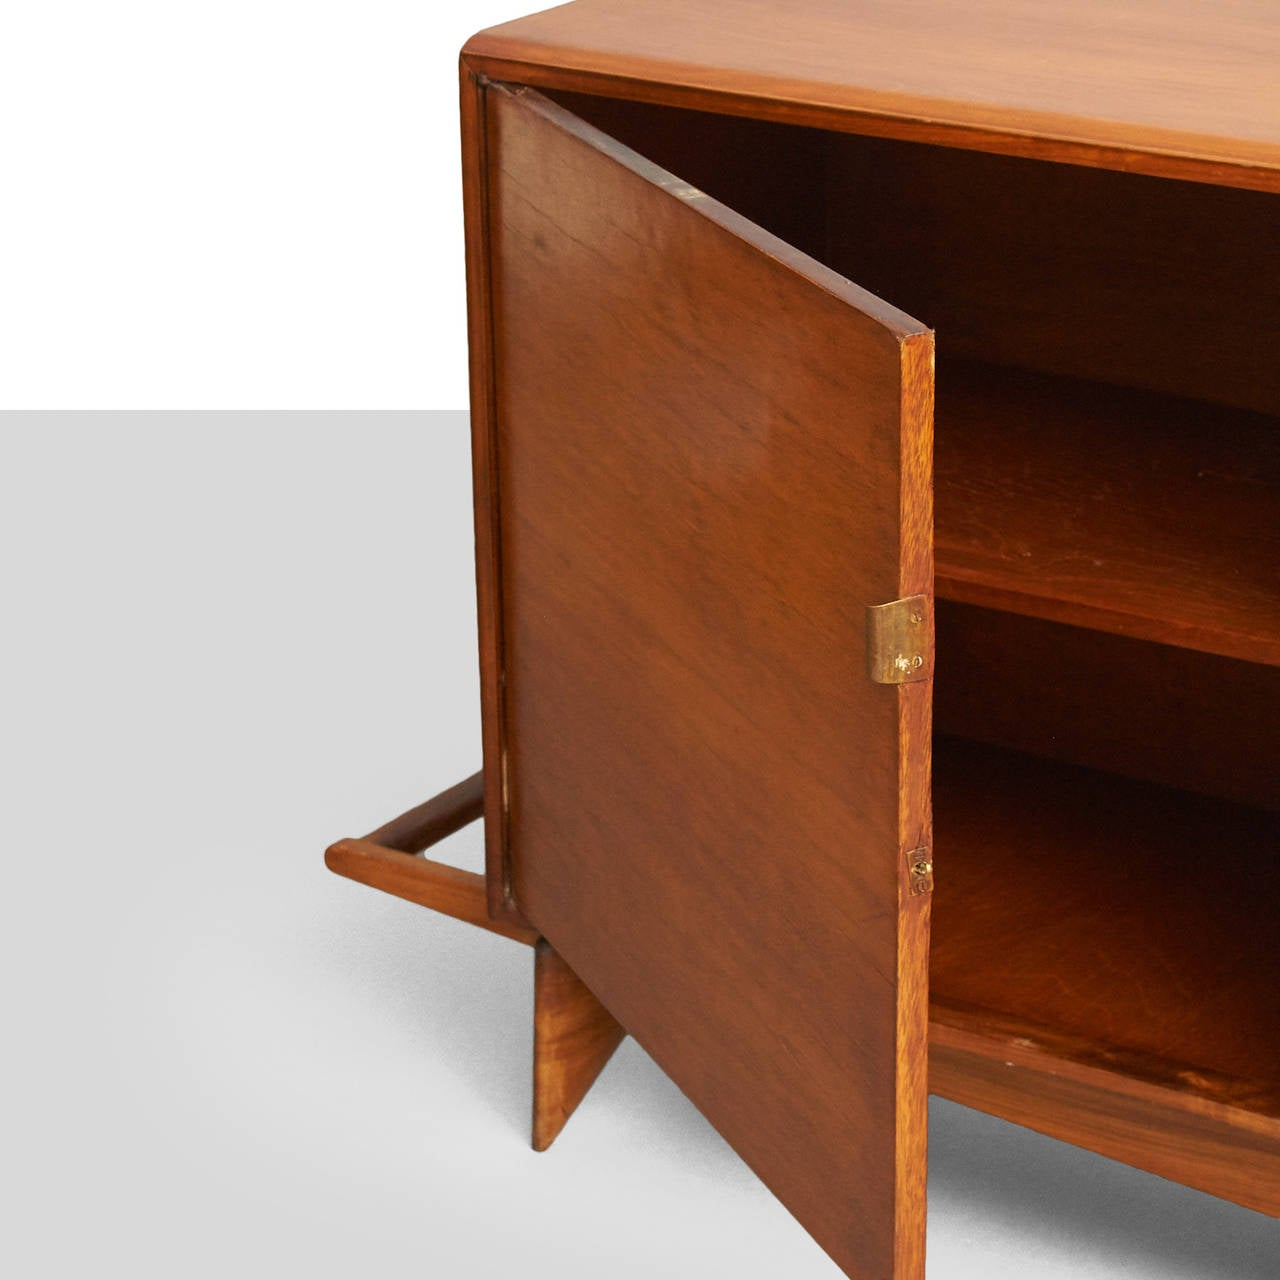 Mid-20th Century Carlo Hauner and Martin Eisler Credenza For Sale